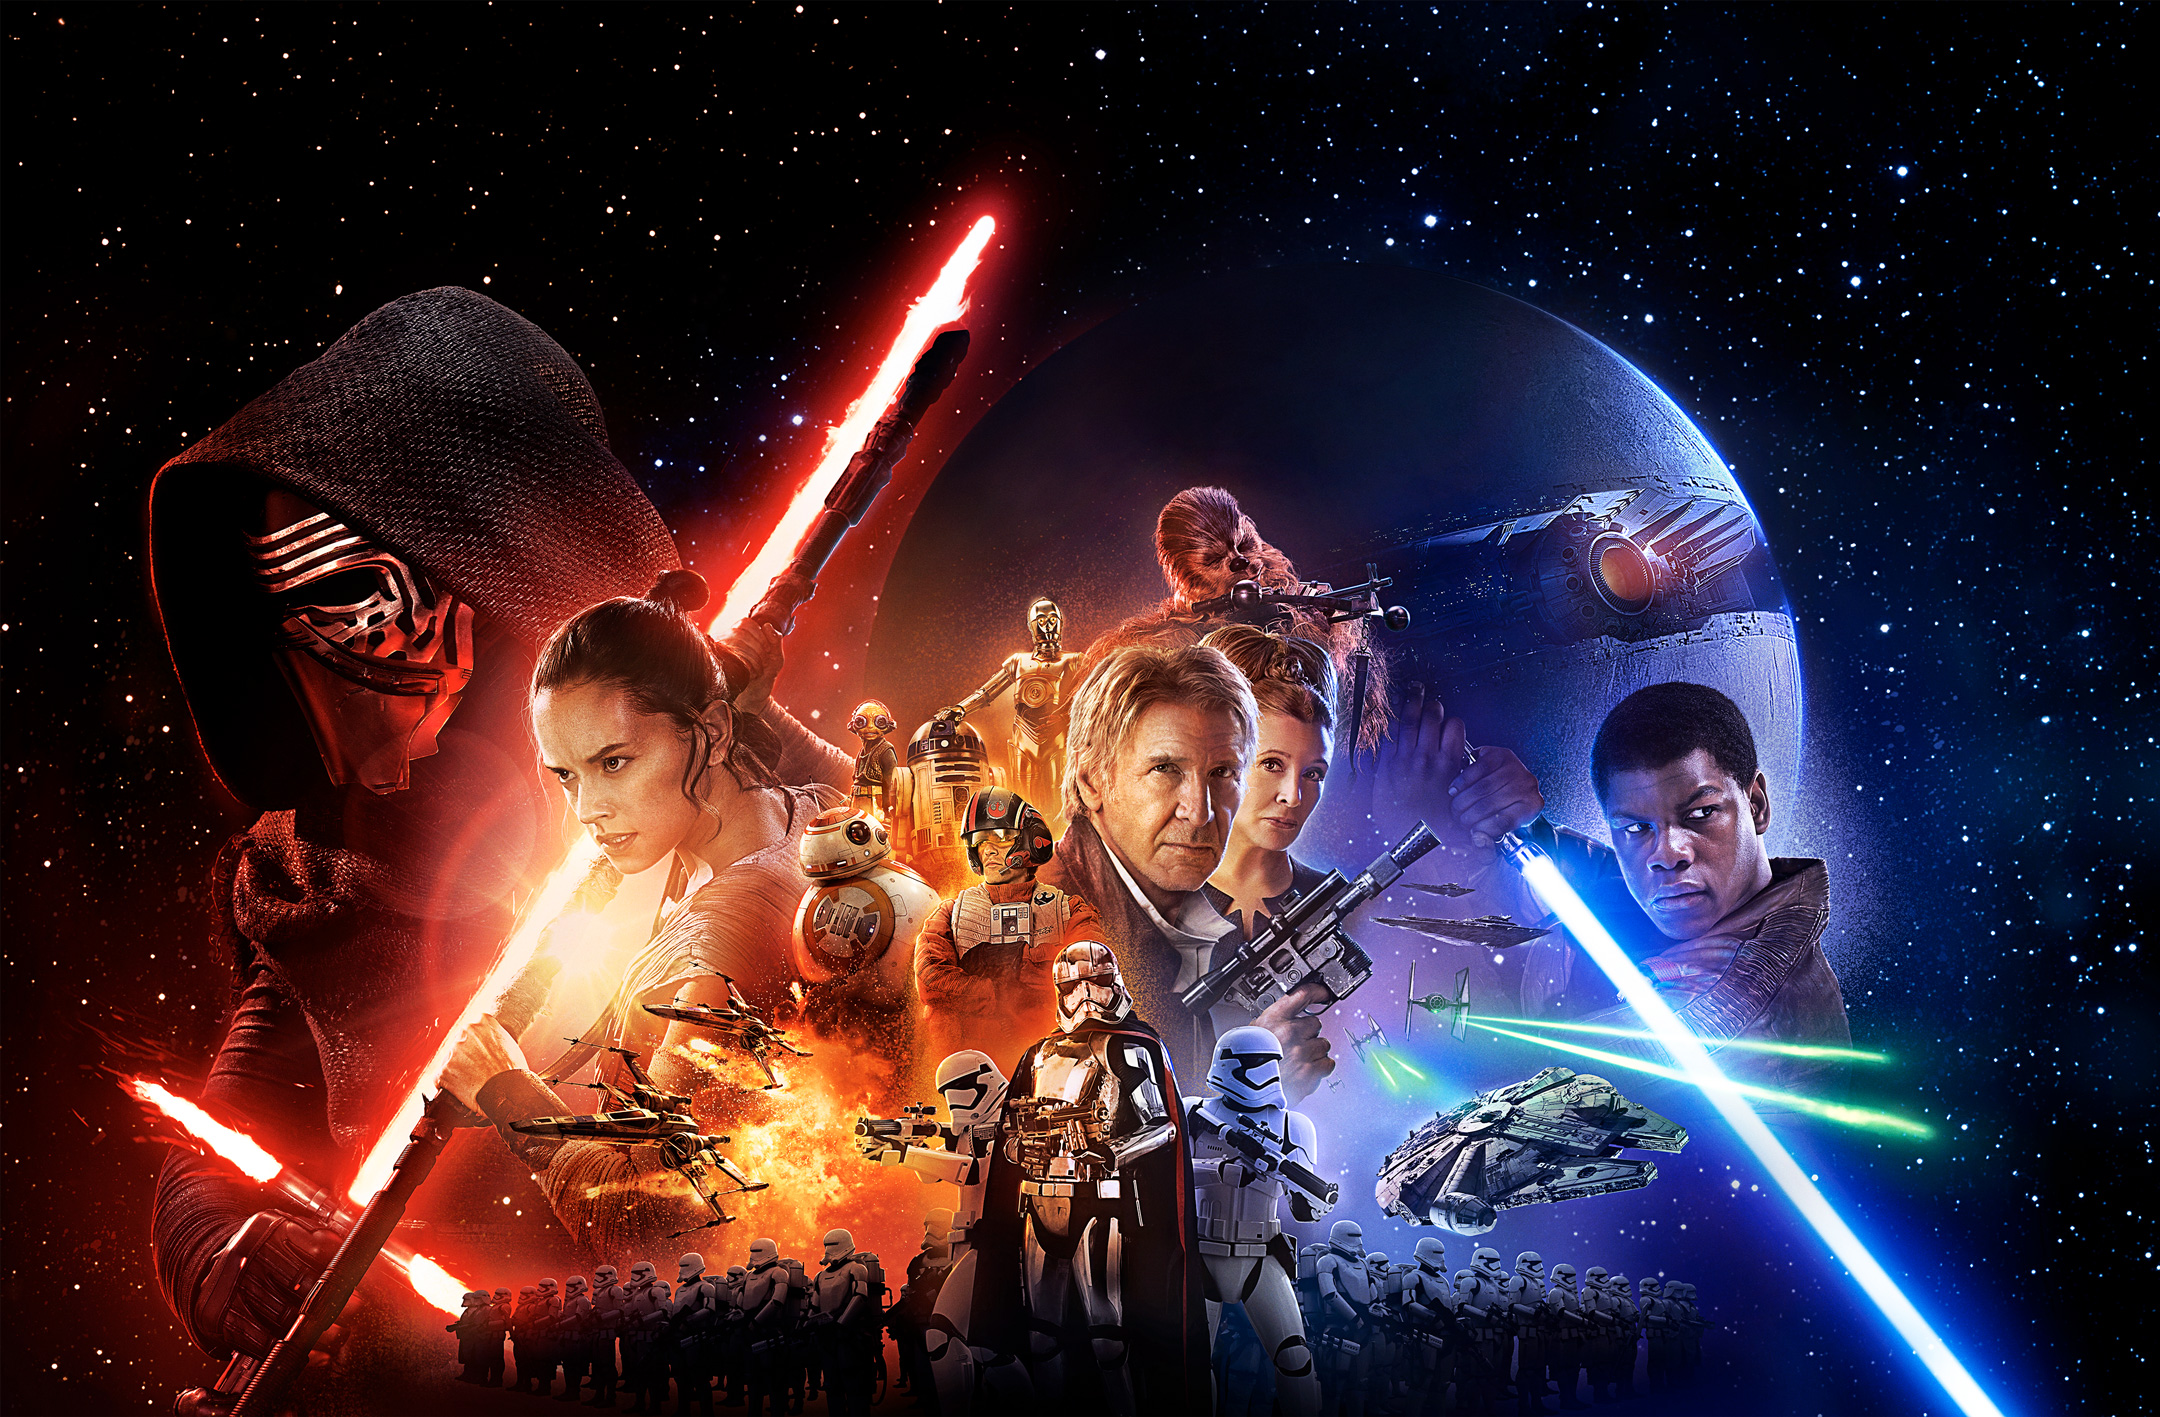 Promotional Banners For Star Wars: The Force Awakens Revealed